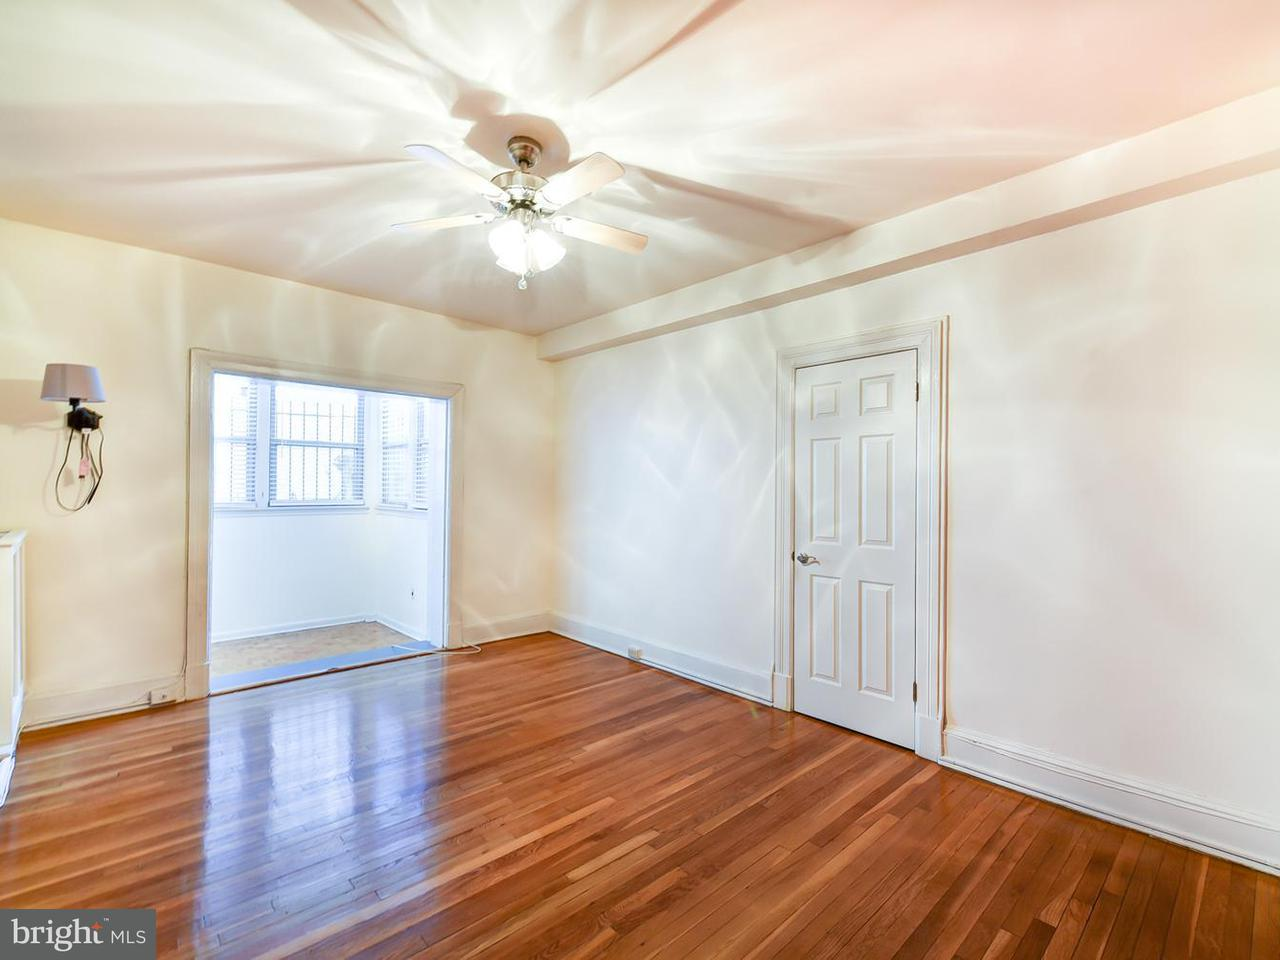 Additional photo for property listing at 1910 Kalorama Rd NW #106  Washington, District Of Columbia 20009 United States